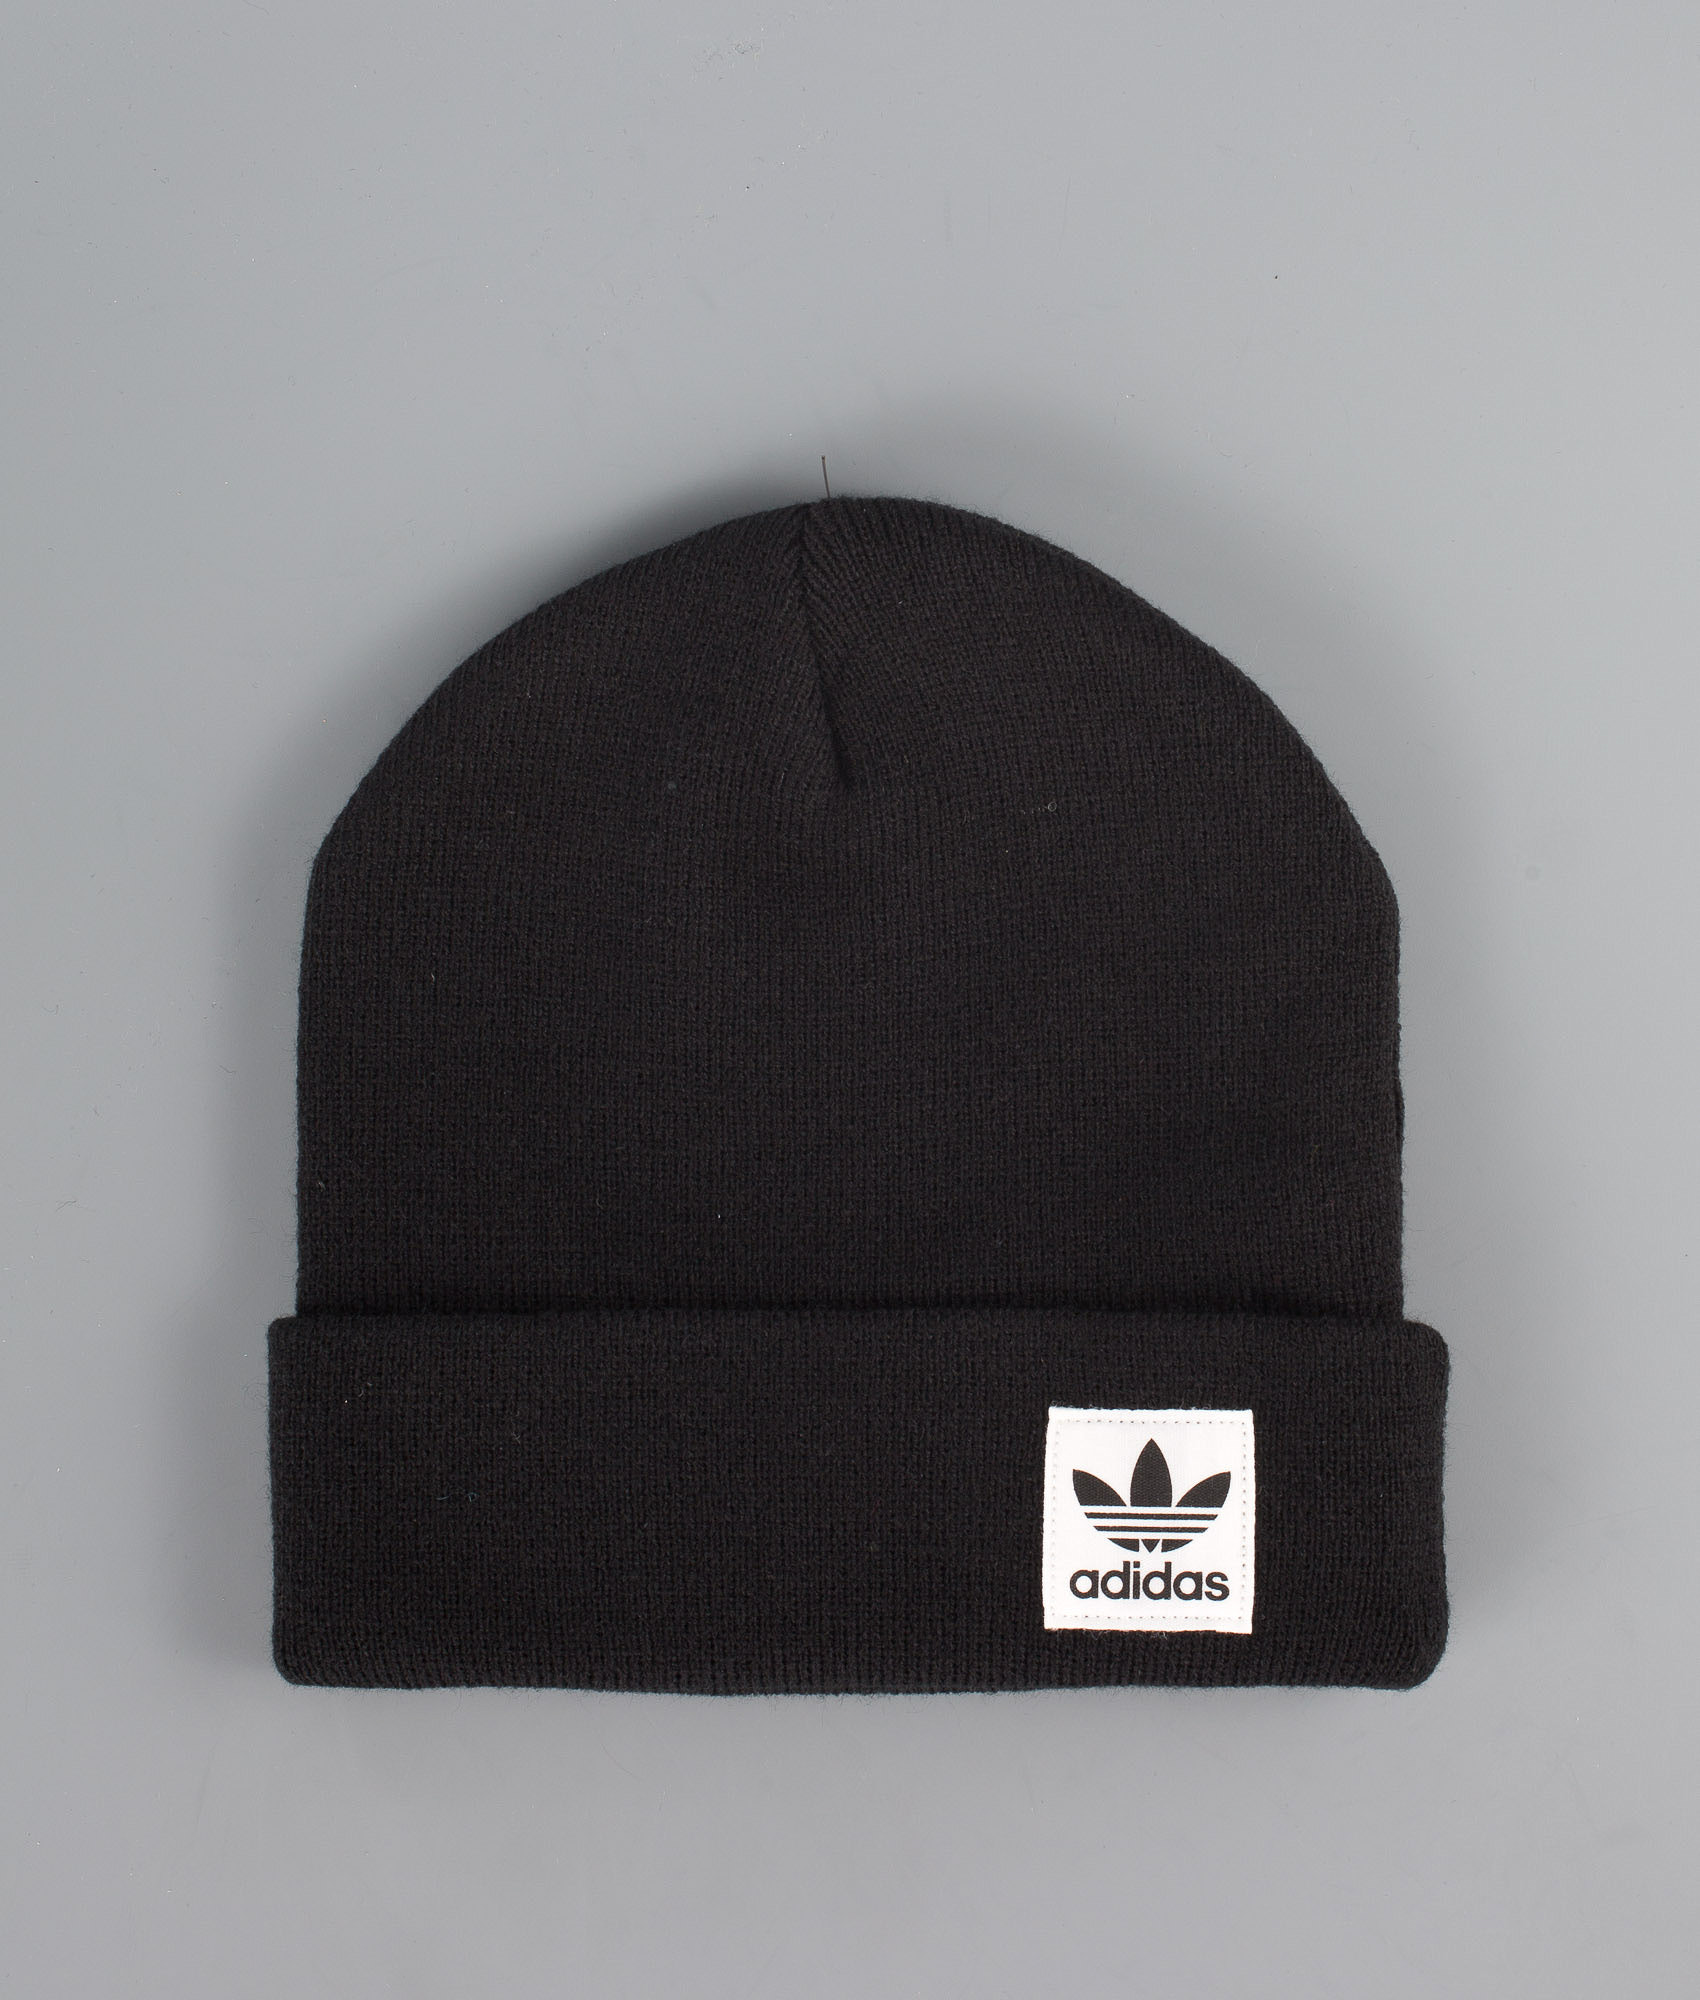 Adidas Originals High Beanie Black - Ridestore.com 6b3ab894601c